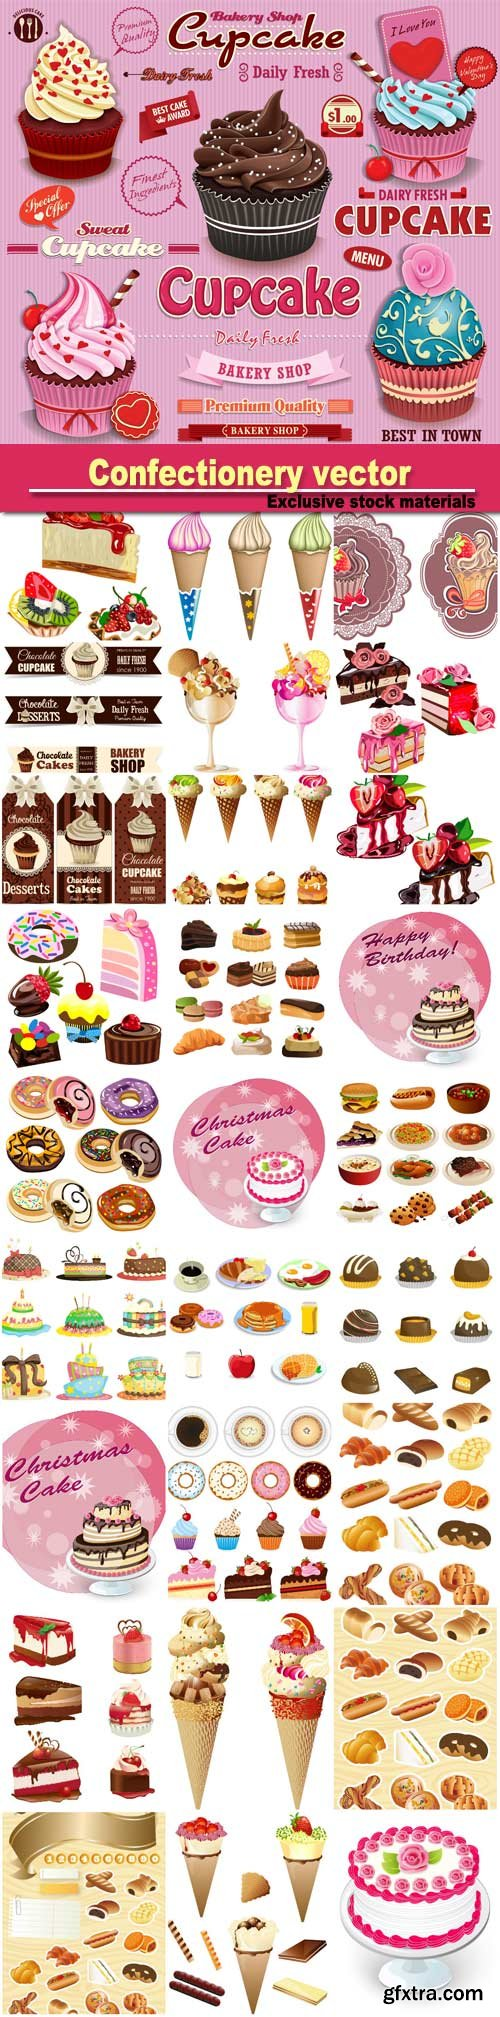 Confectionery vector, muffins, cakes and cake, ice cream